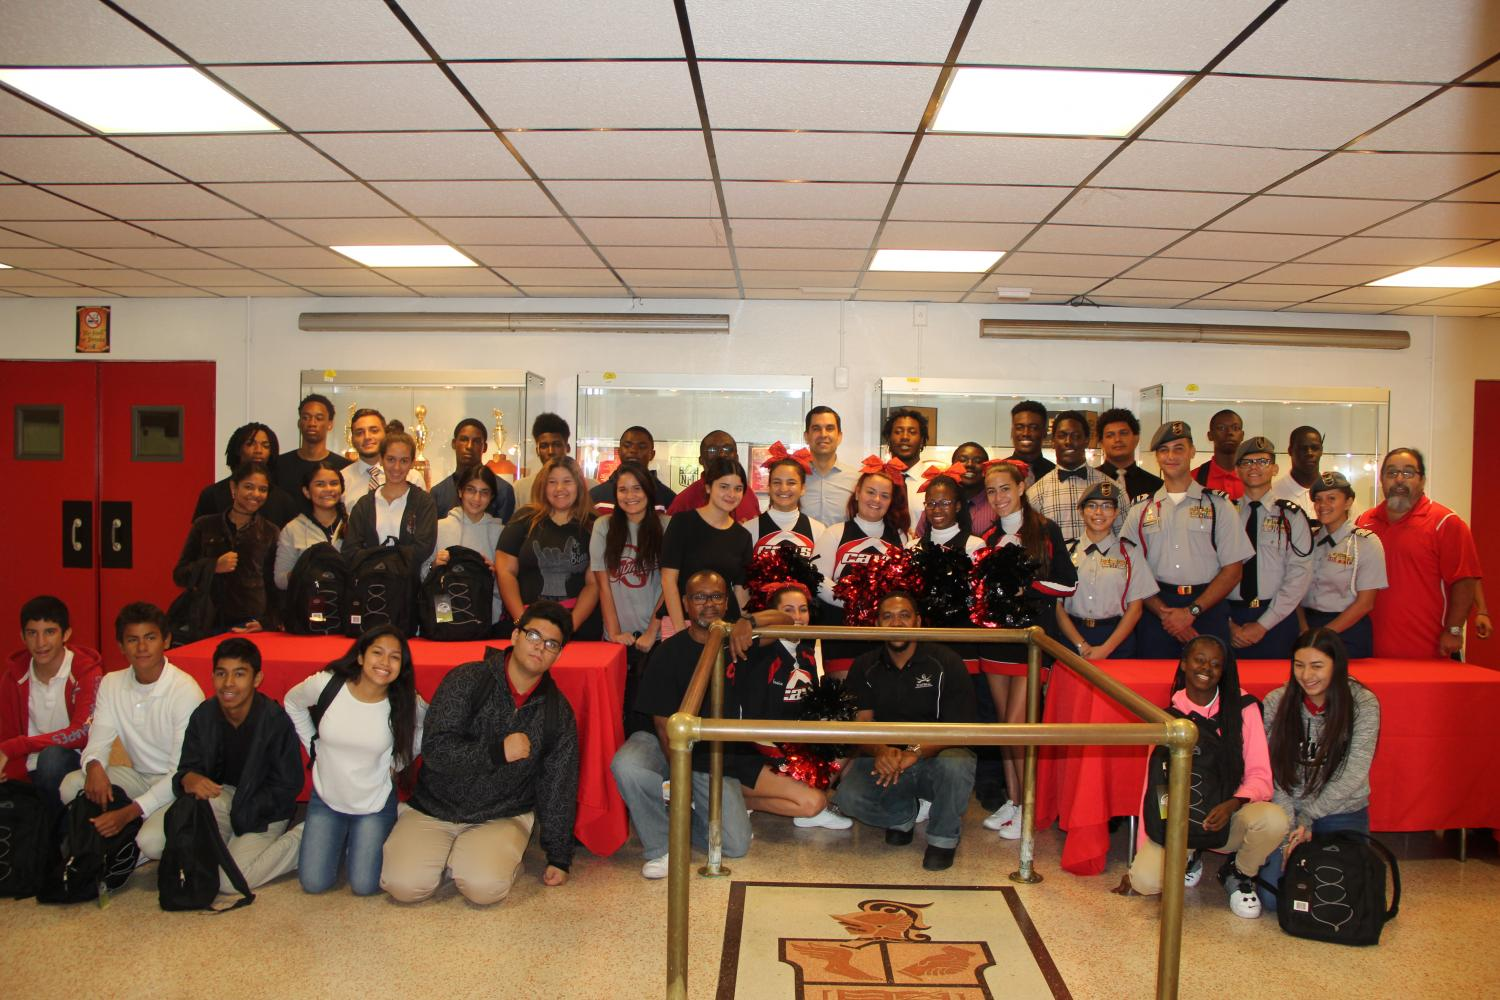 Gables students smile for a picture with Commissioner Lago in the auditorium lobby.